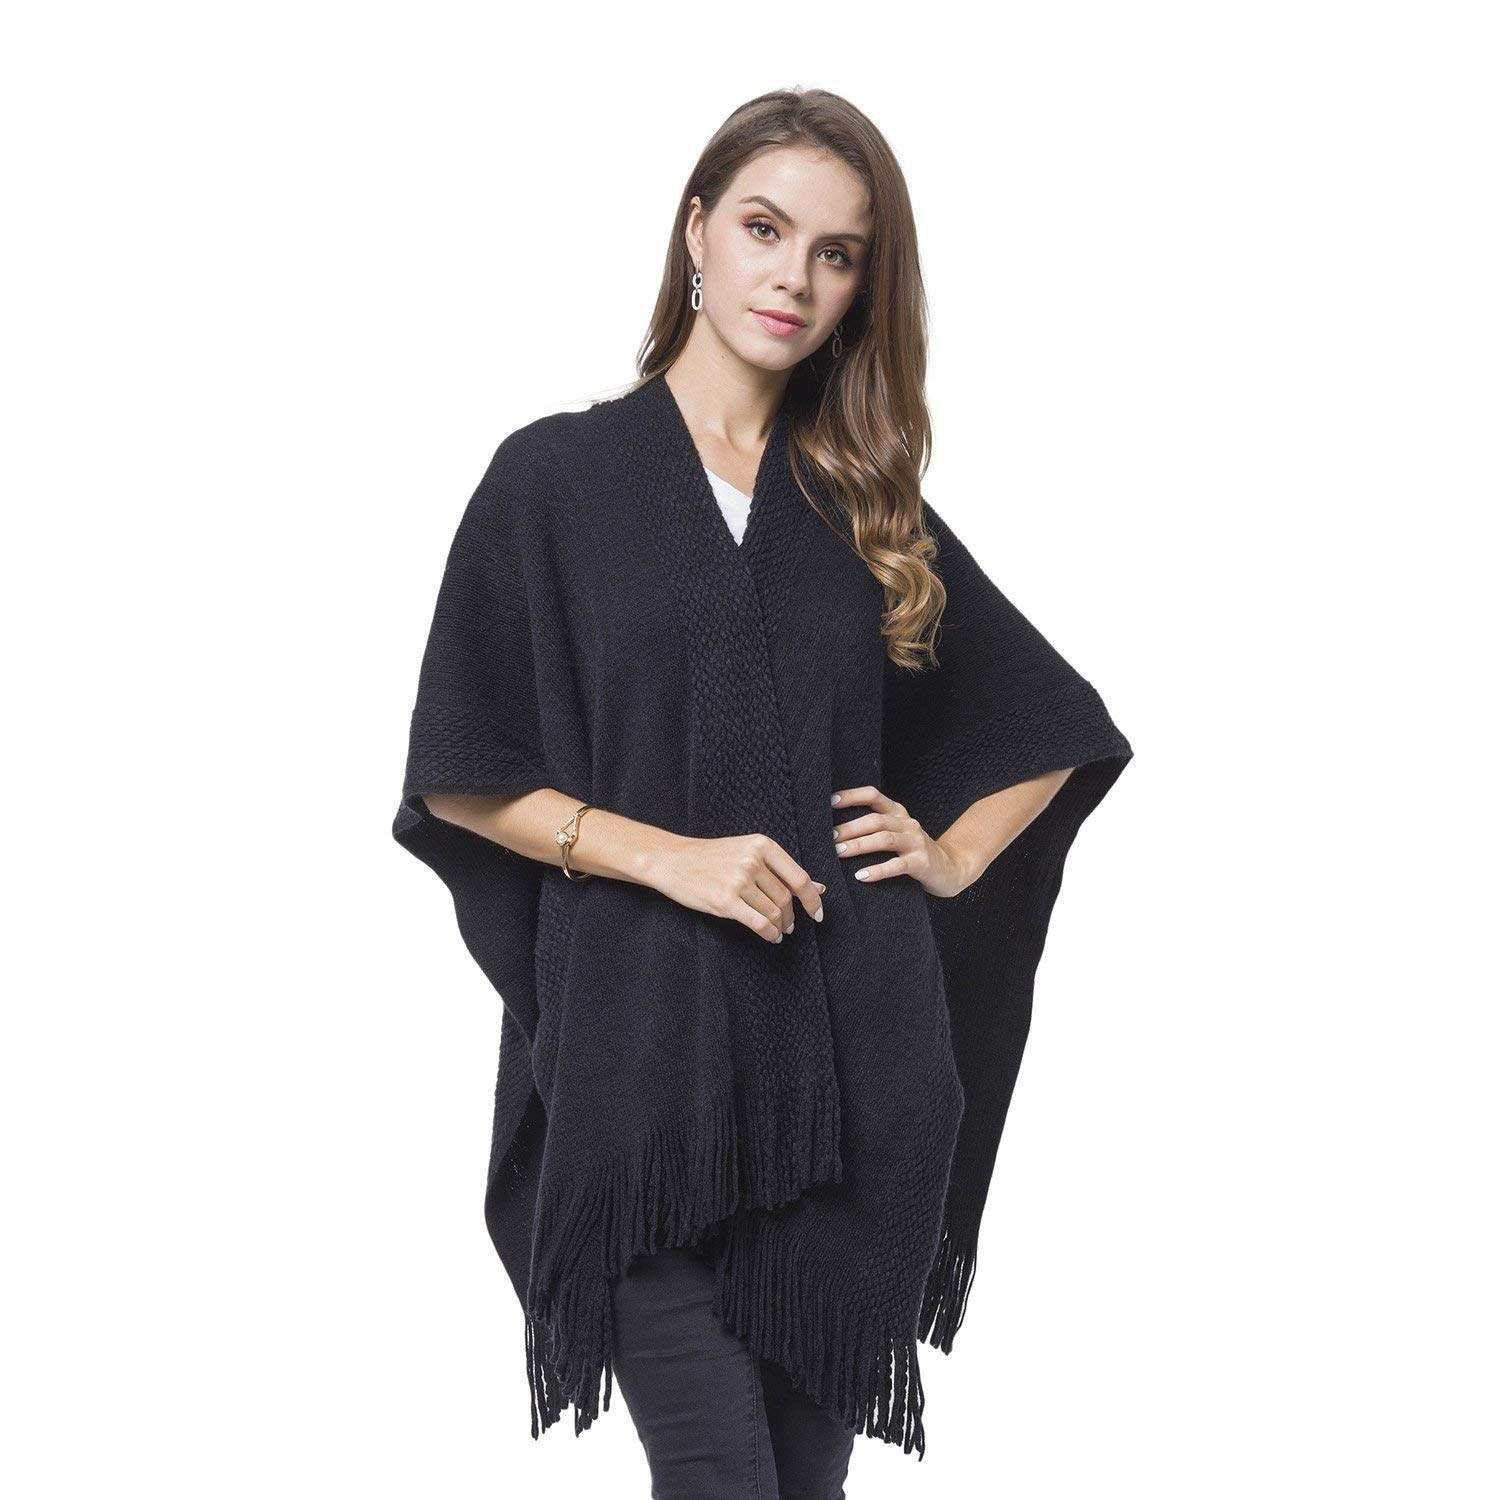 66220ec16ed Get Quotations · Black 100% Acrylic Knitted Pattern Swimsuit Cover-ups  Kimono For Women with Tassels 27.5